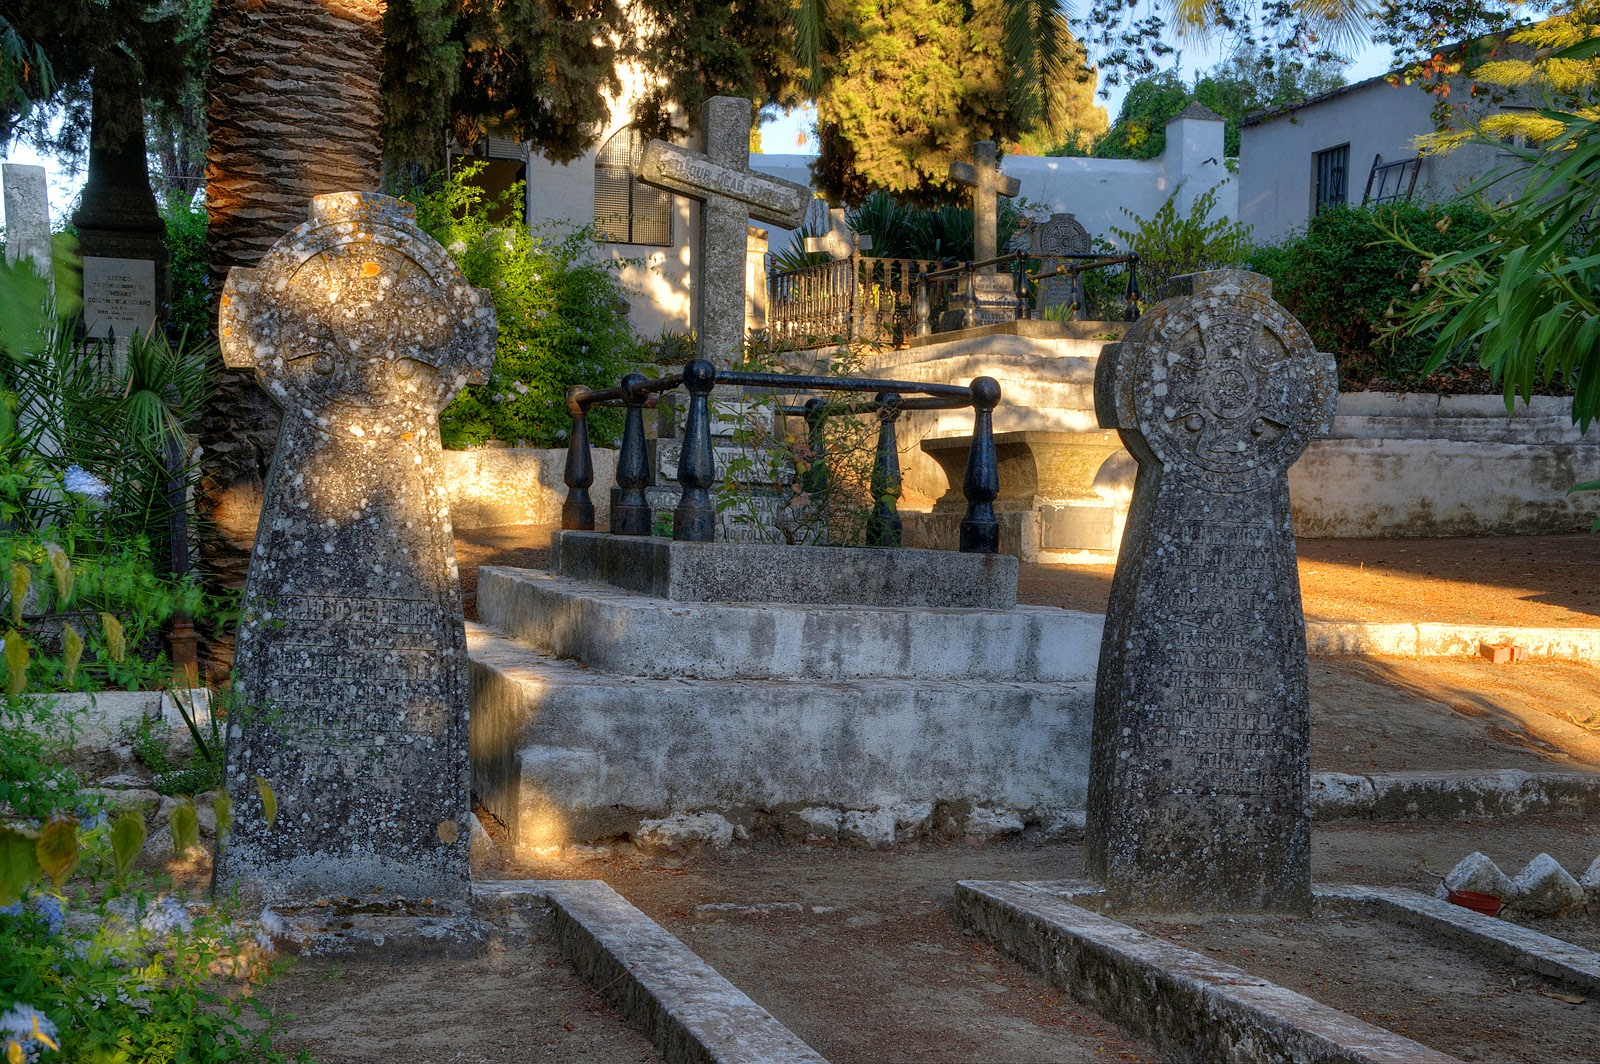 English Cemetery in Linares, Spain